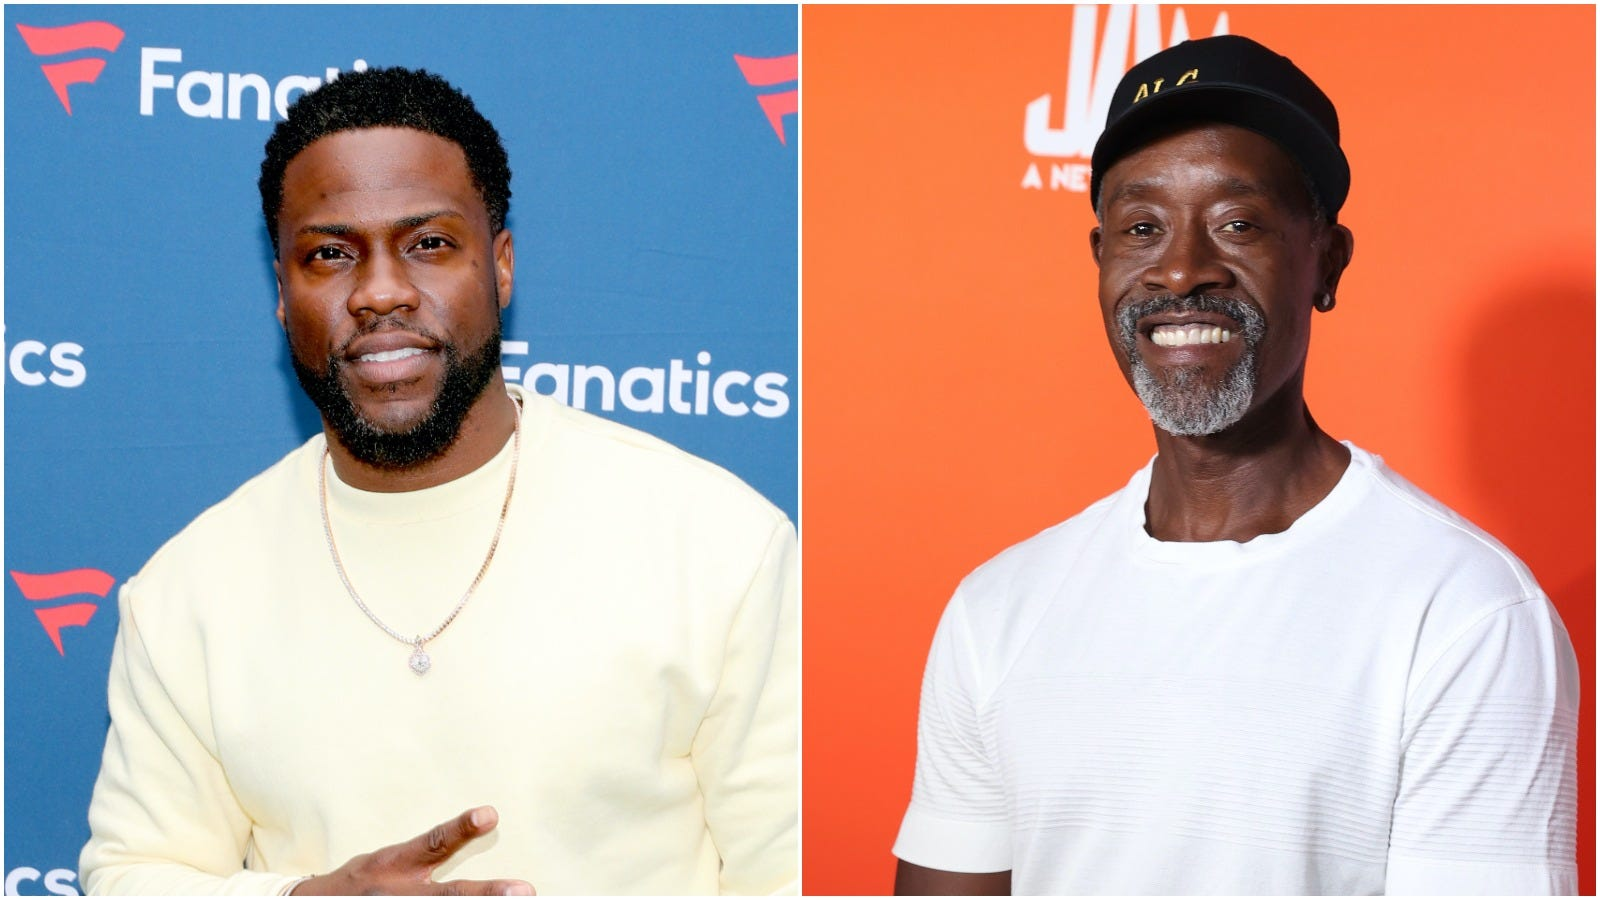 Kevin Hart's unfiltered reaction to learning Don Cheadle's age goes viral: 'Damn!'